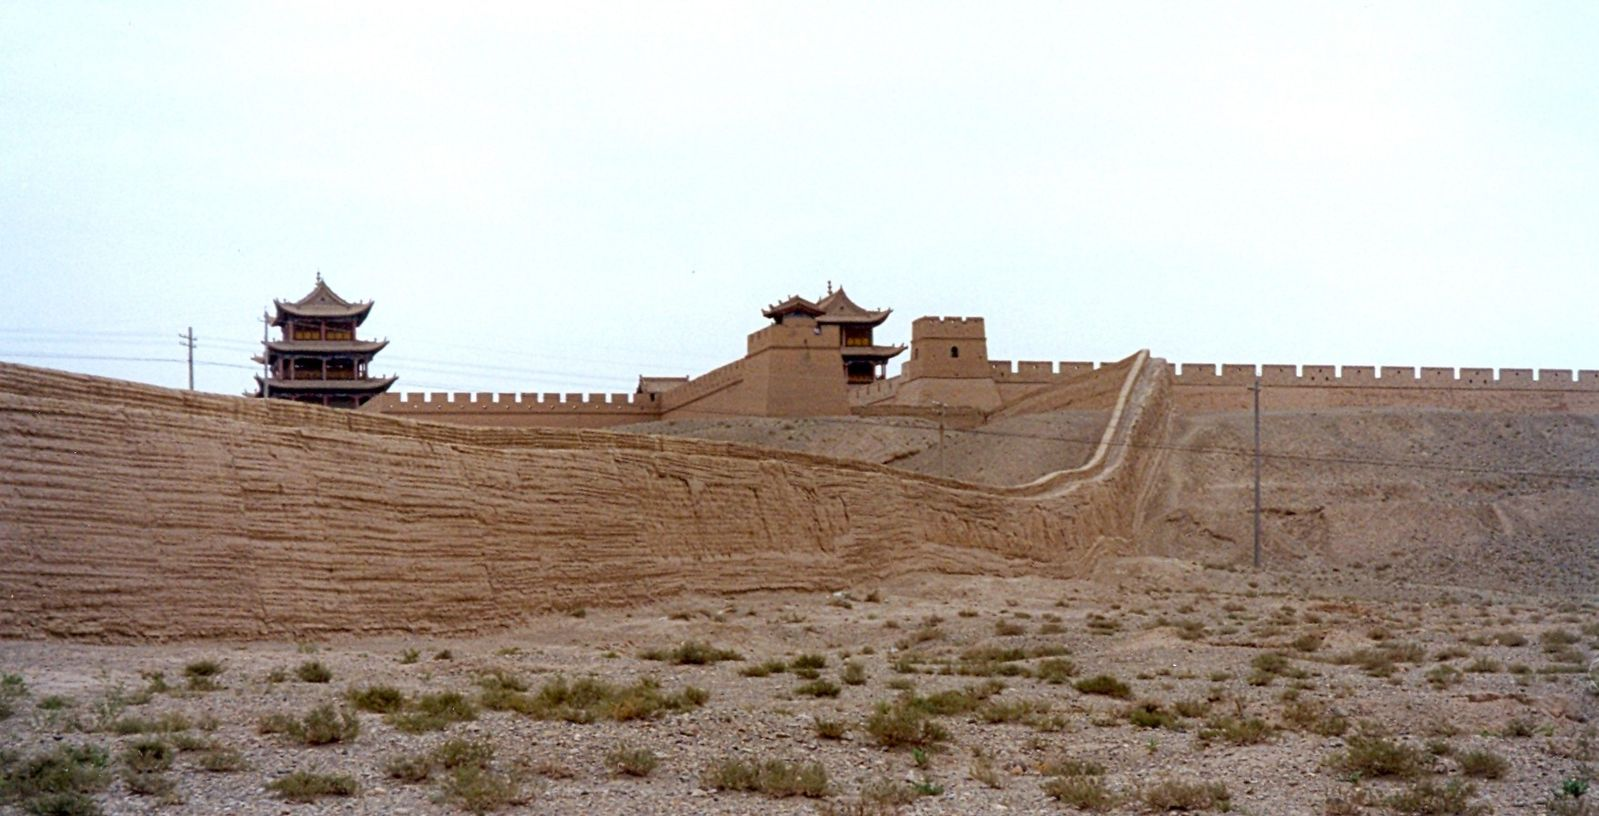 Legend has it that the Jiayuguan Pass has a mysterious extra brick which was placed loosely behind the Xiwong city gate part of the structure and no one has ever since dared to move it. (Image Credit: User:Doron [CC BY-SA 3.0], de Wikimedia Commons)